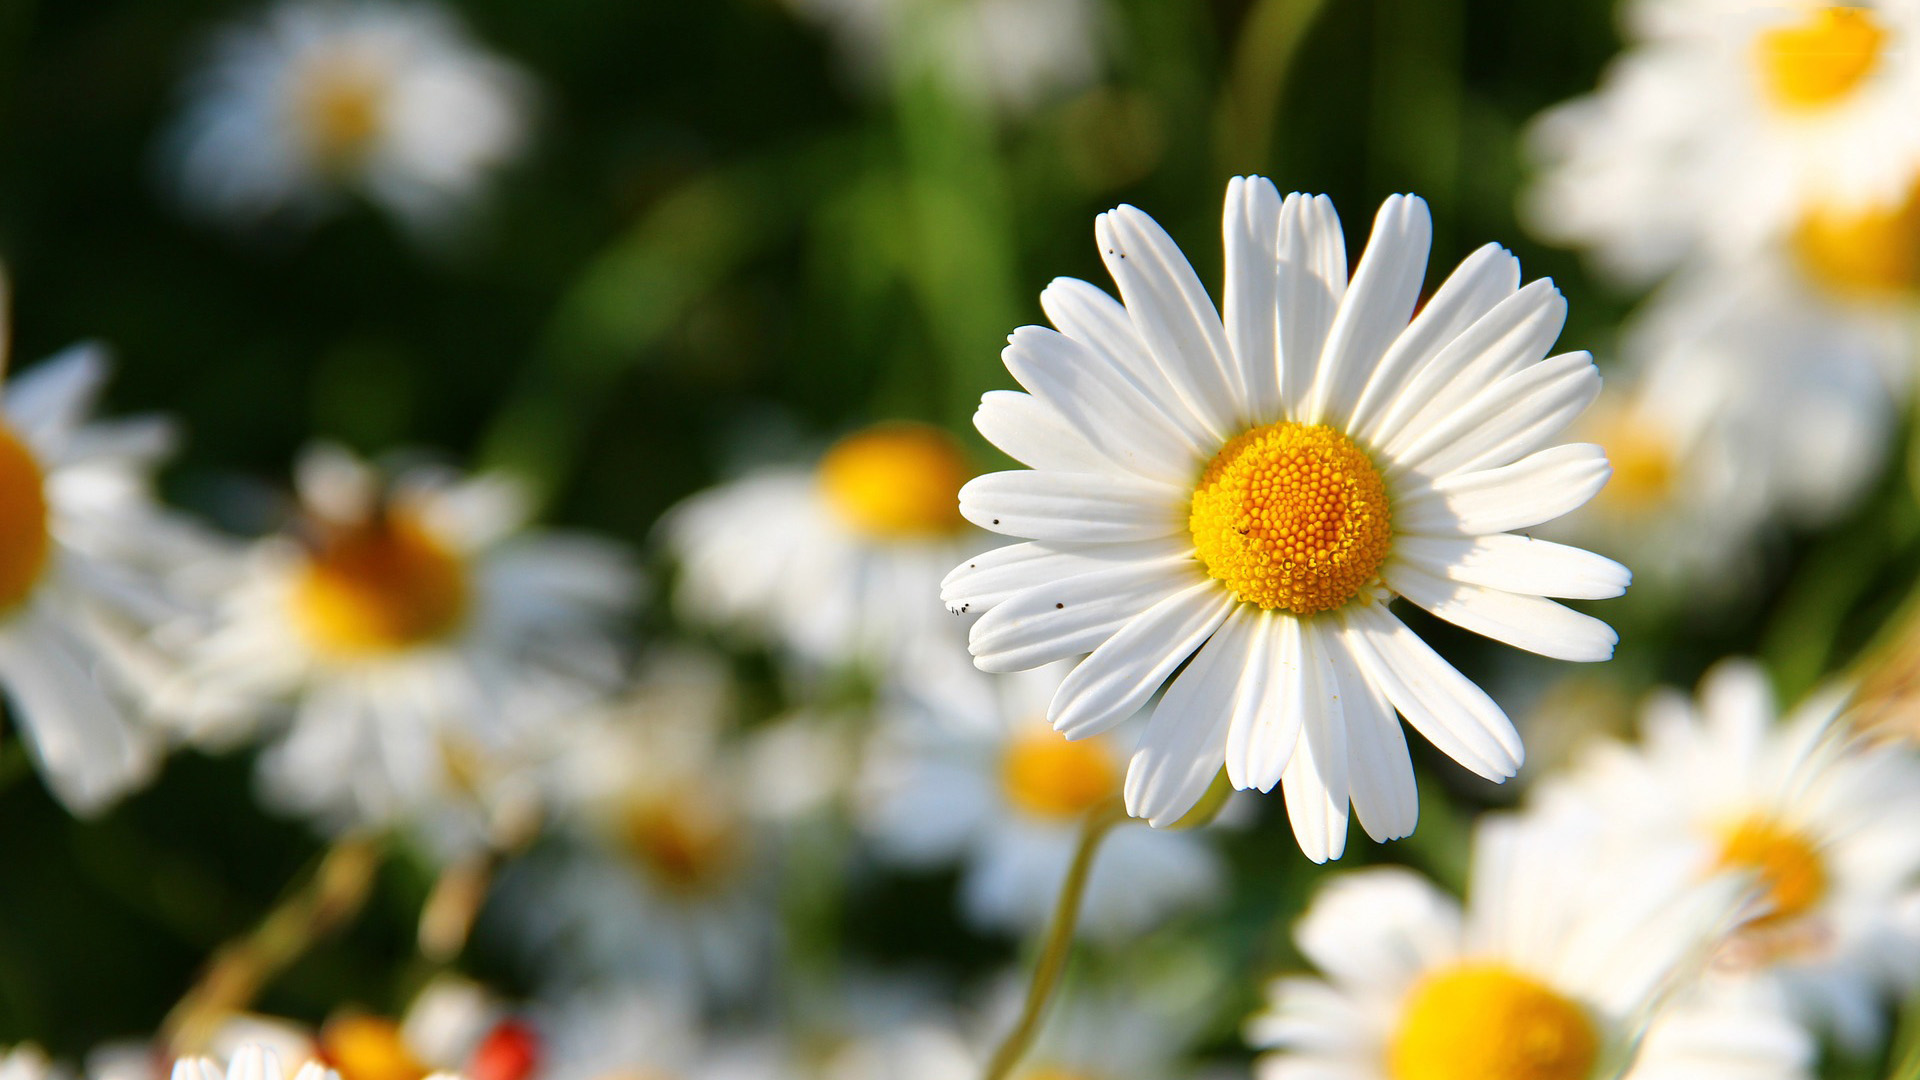 daisy flower hd desktop backround image download